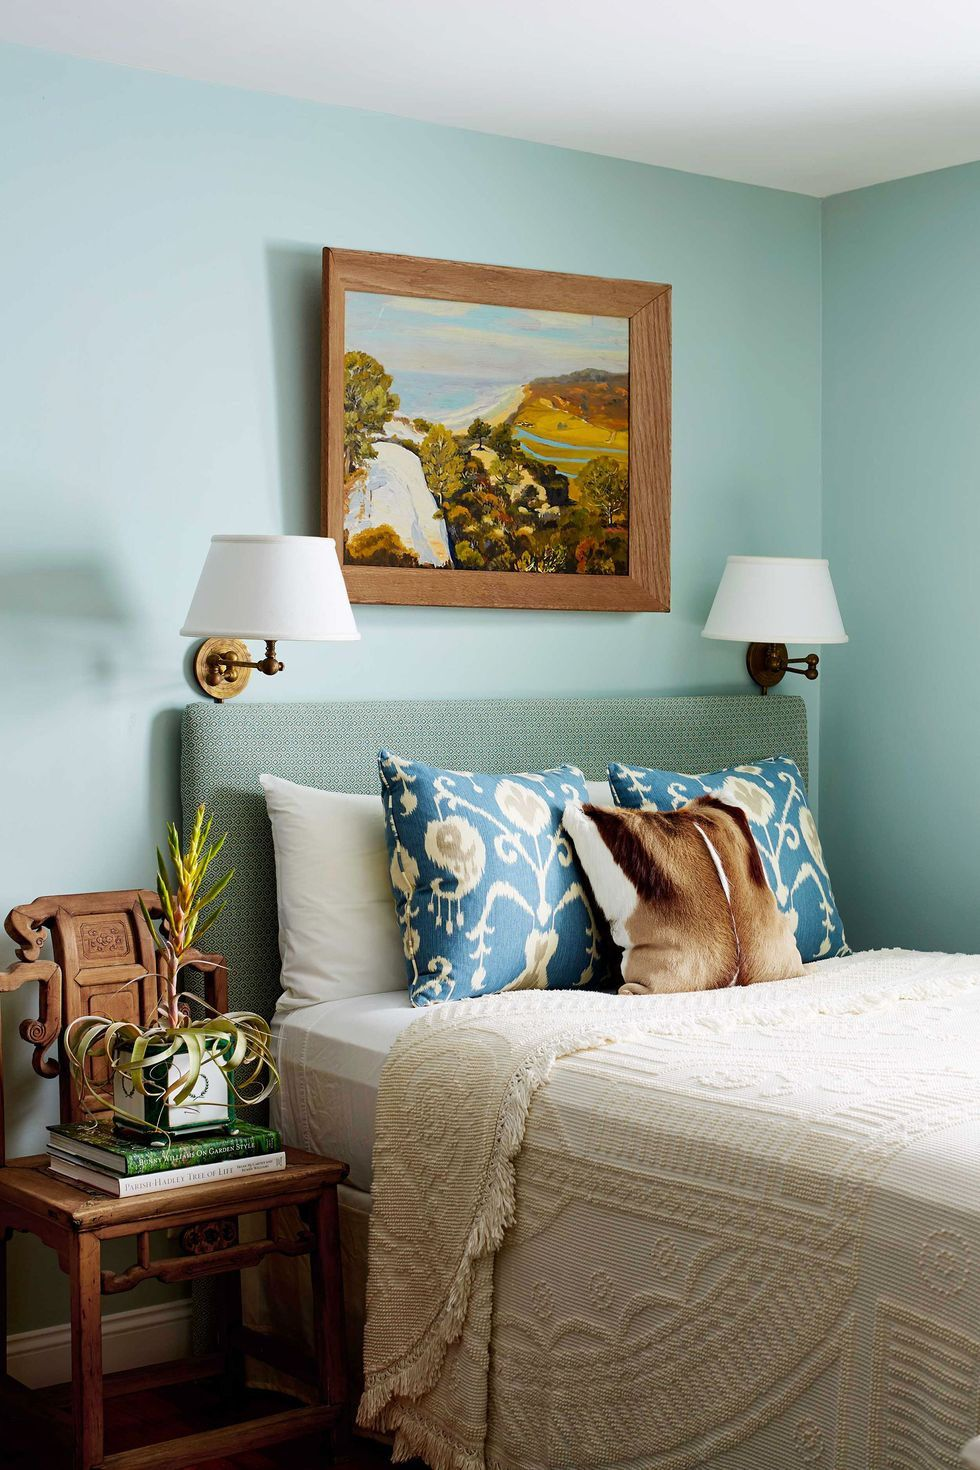 Interior Design Of Guest Room: The Best Guest Room Ideas In 2020